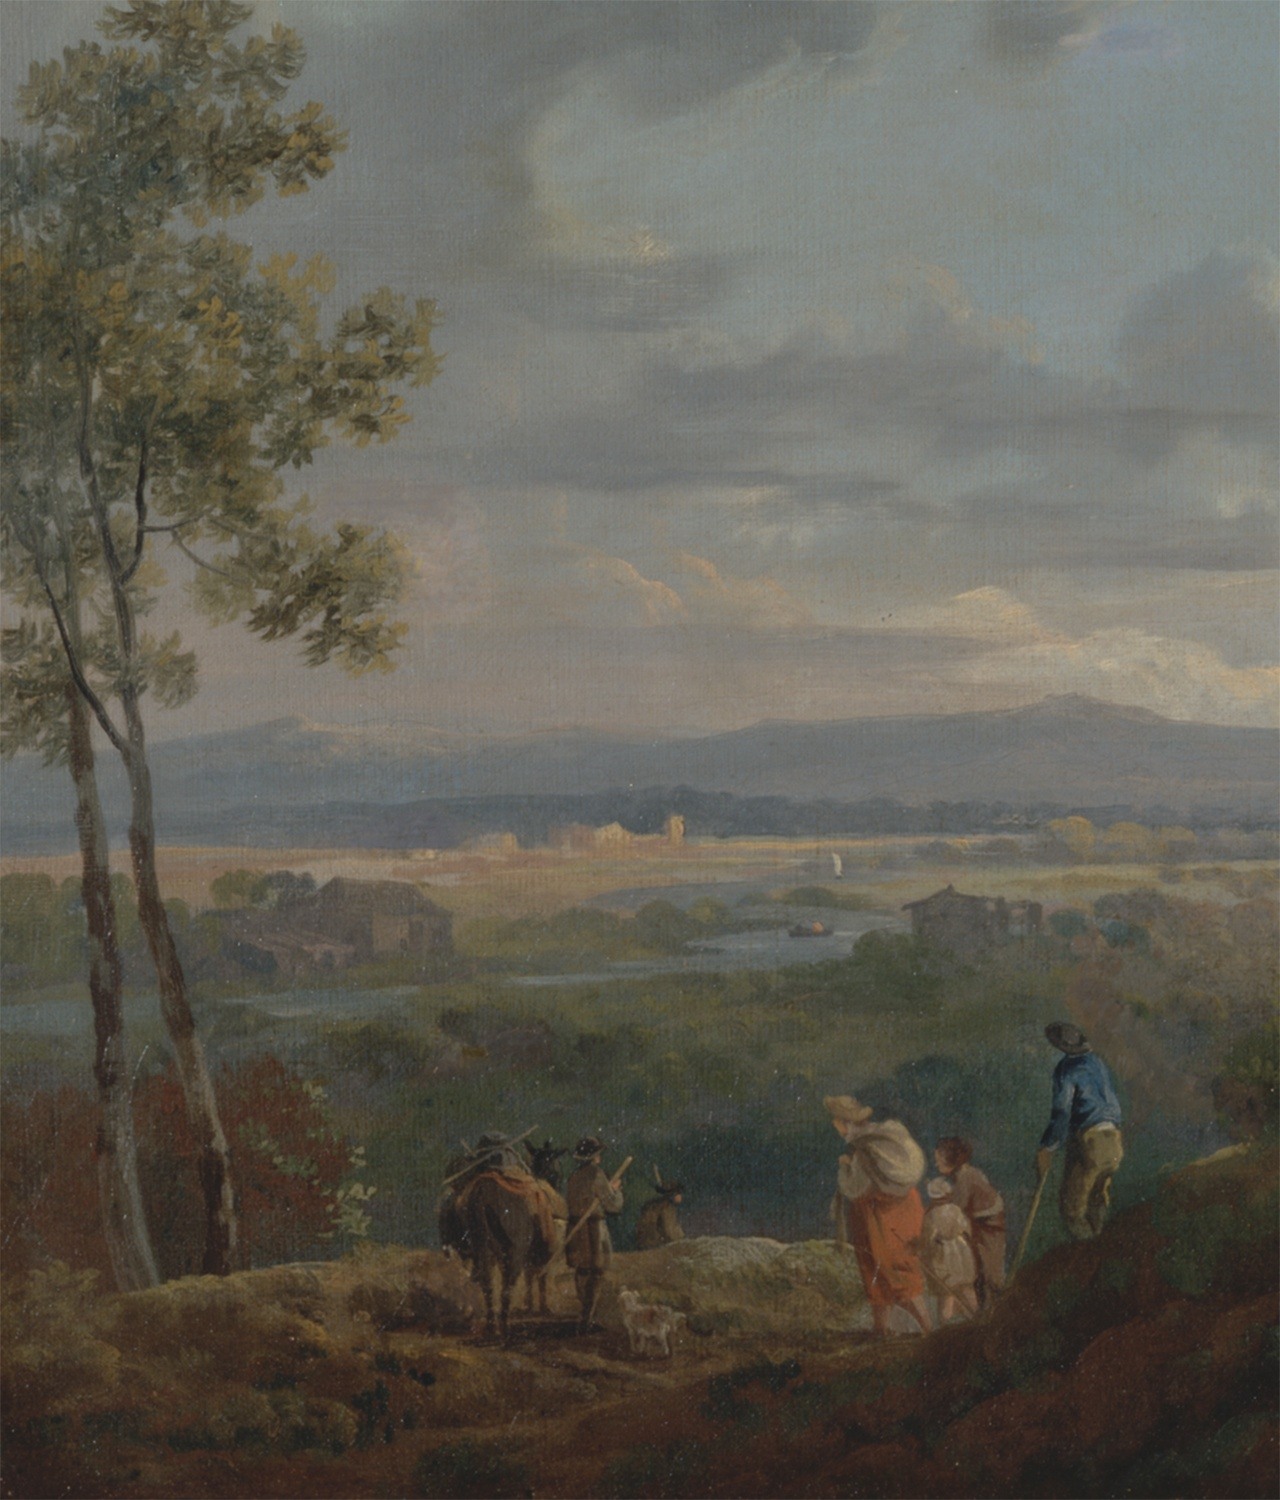 Courtesy of Yale Center for British Art, Paul Mellon Collection.